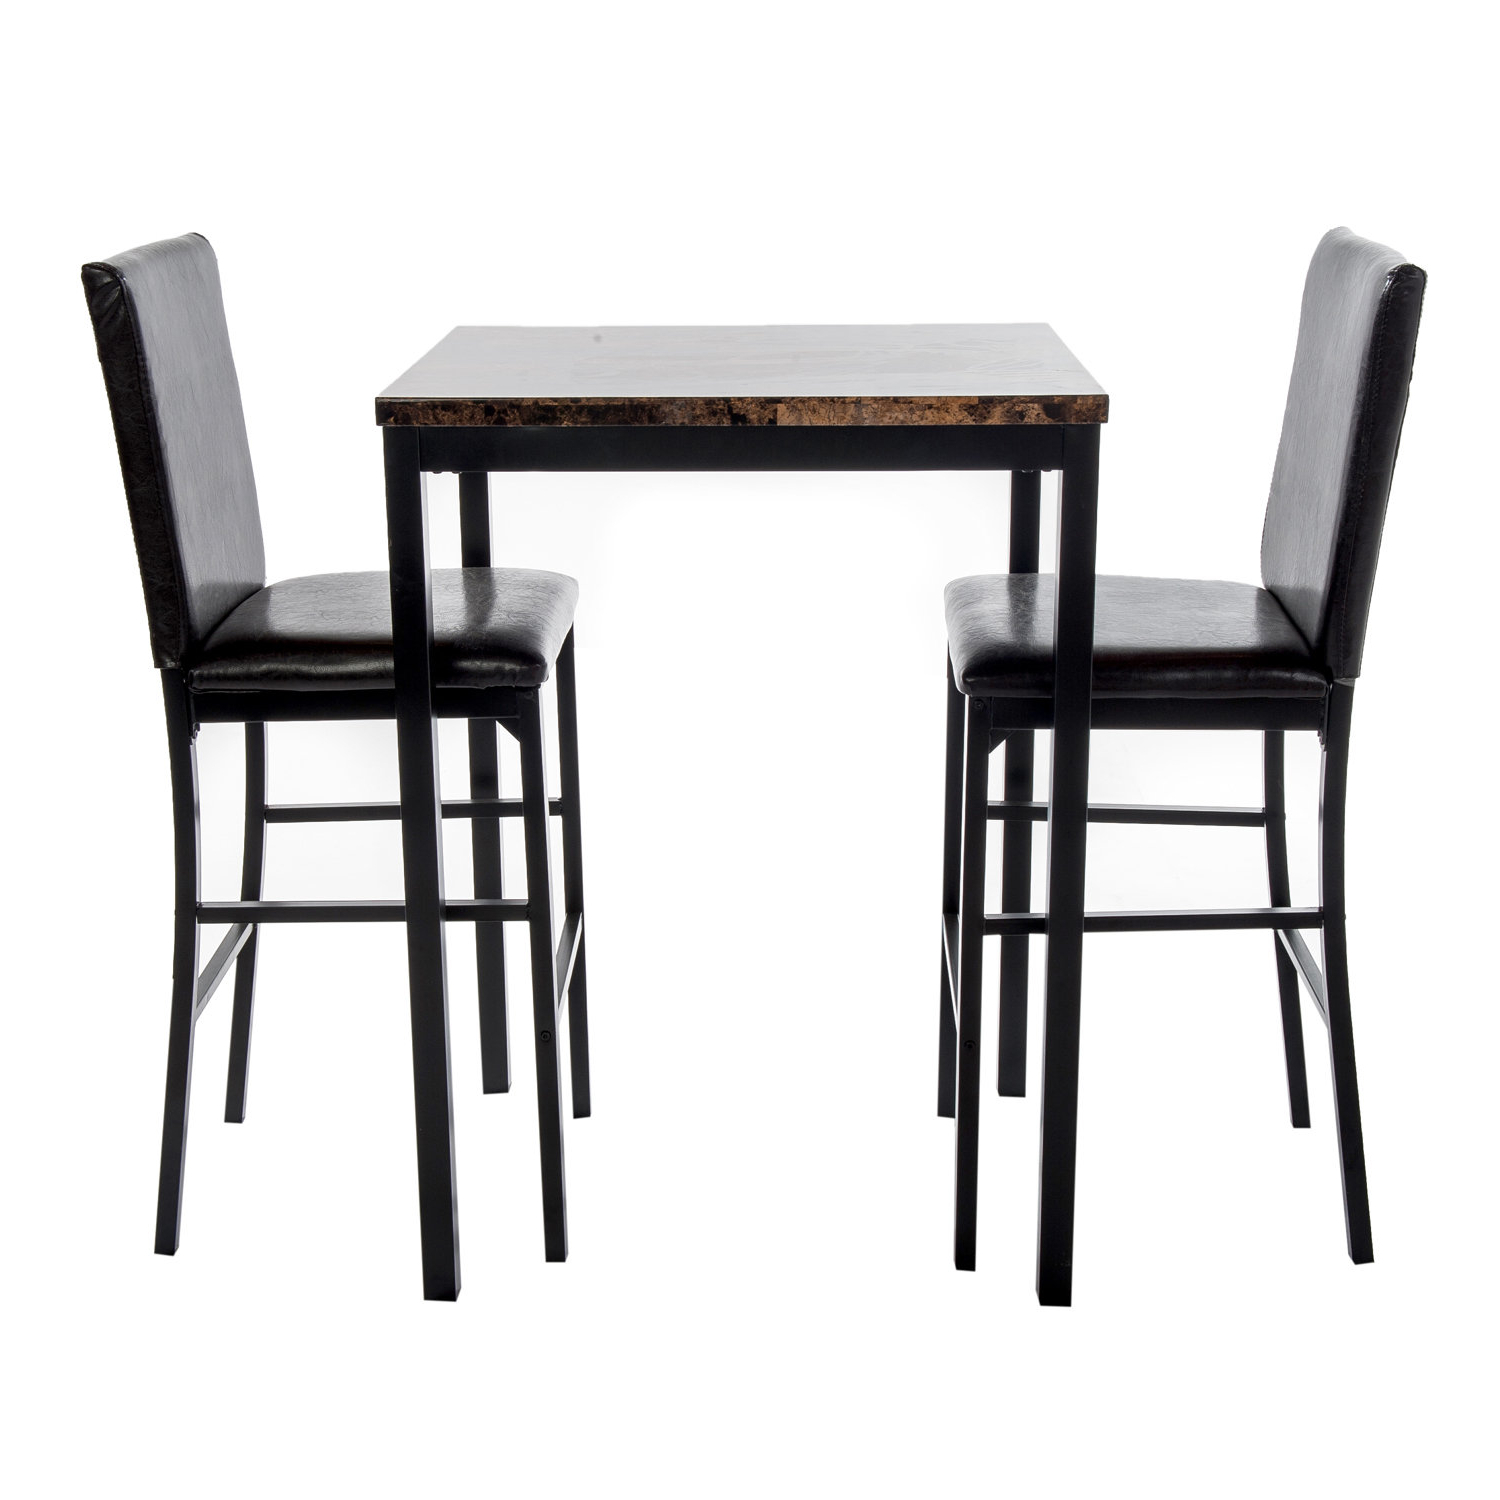 Famous Della 3 Piece Bistro Pub Table Set Within Isolde 3 Piece Dining Sets (View 9 of 20)